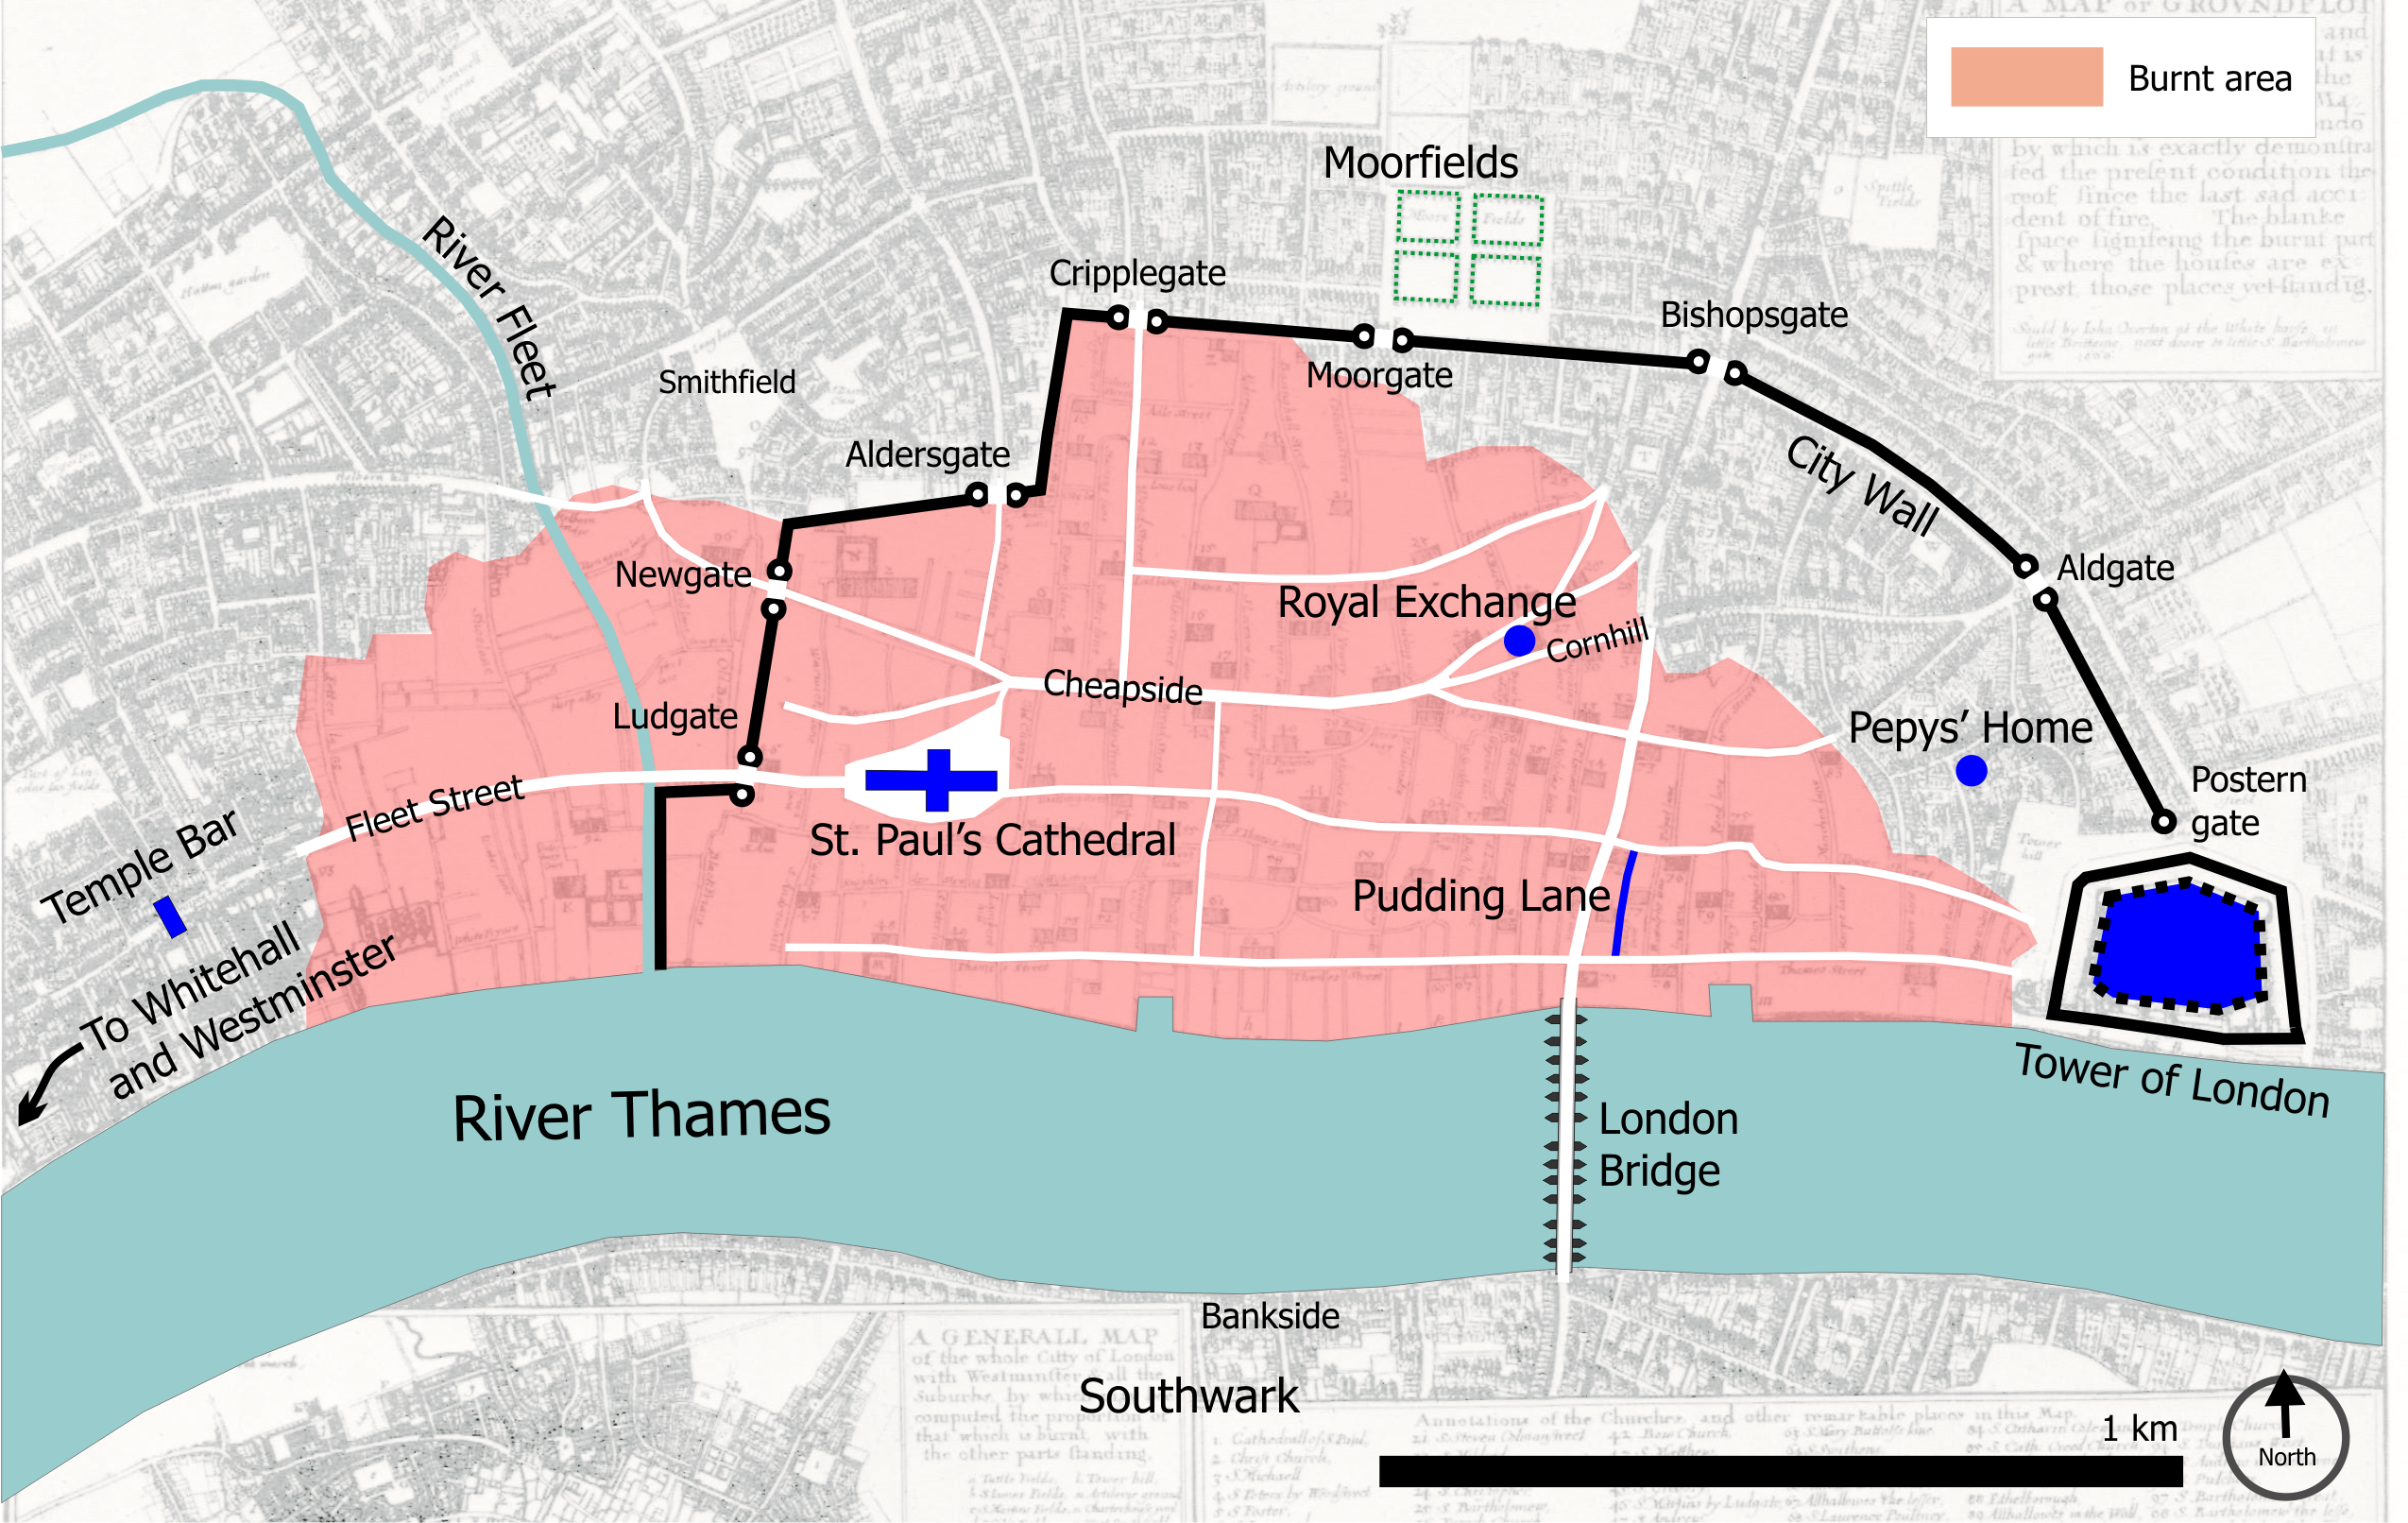 London City Area Map.File Great Fire Of London Map Png Wikimedia Commons